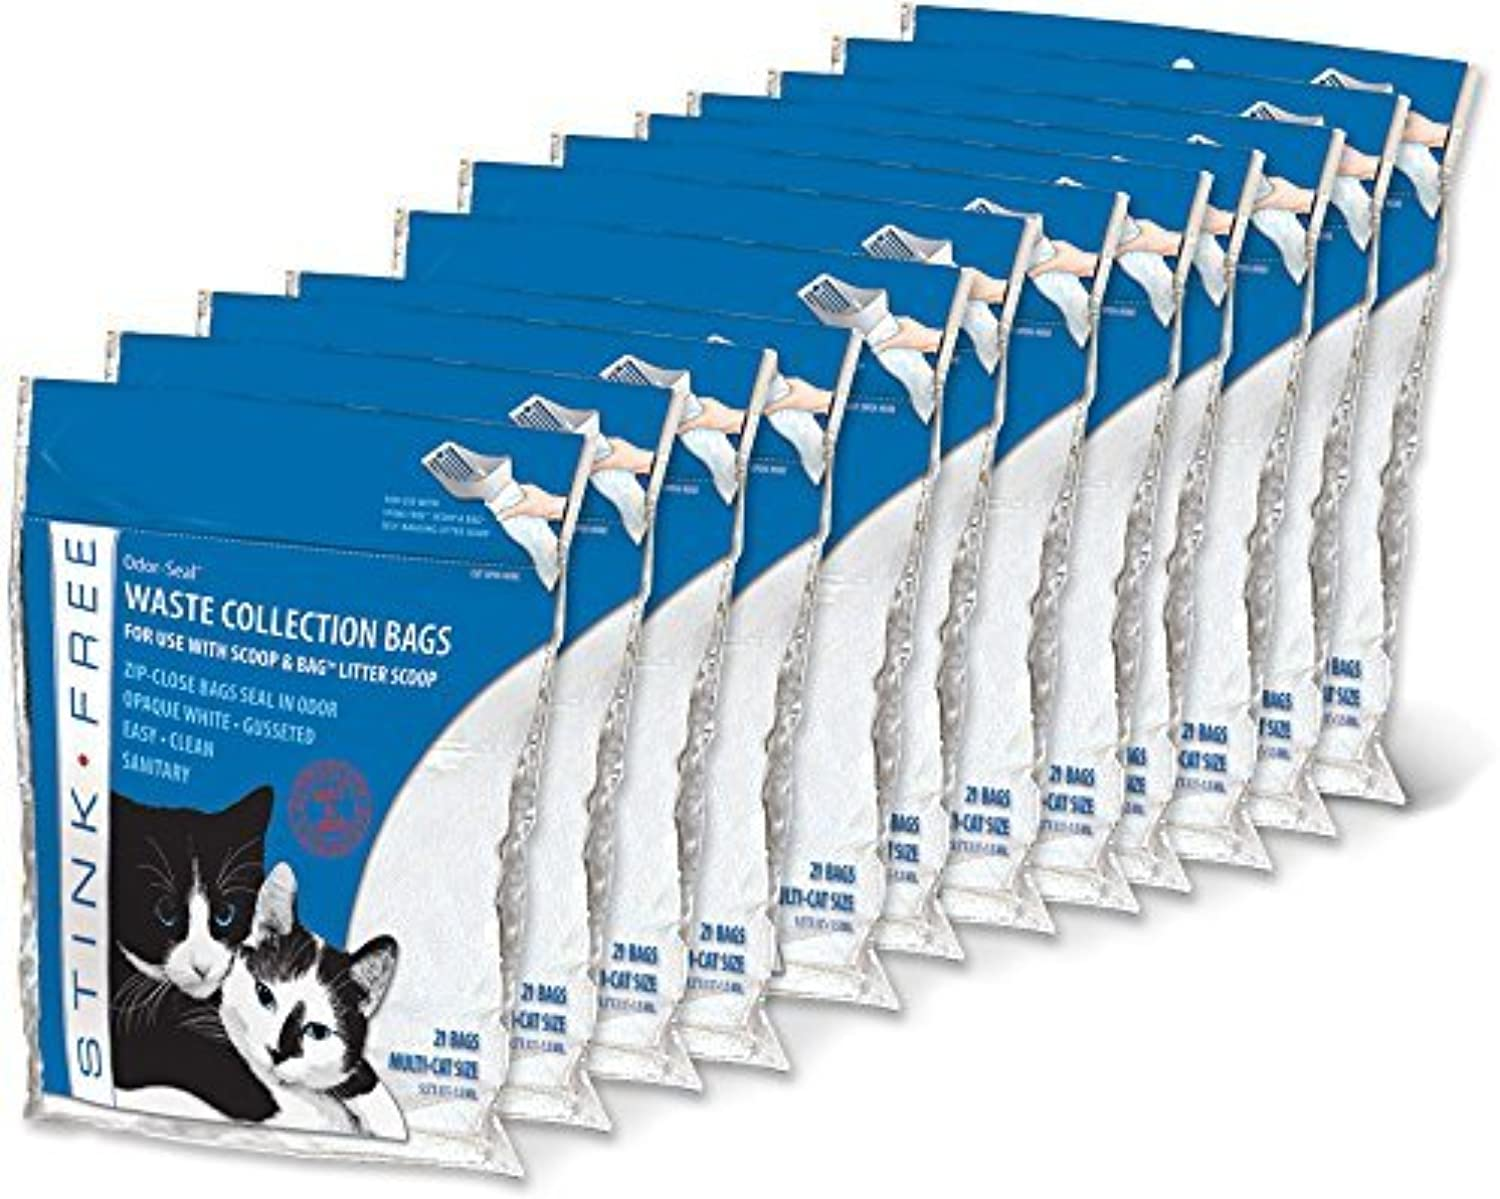 OdorSeal Cat Litter Waste Collection Bags (fits Scoop&Bag) 12 Pkgs (252 Bags) by Stink Free